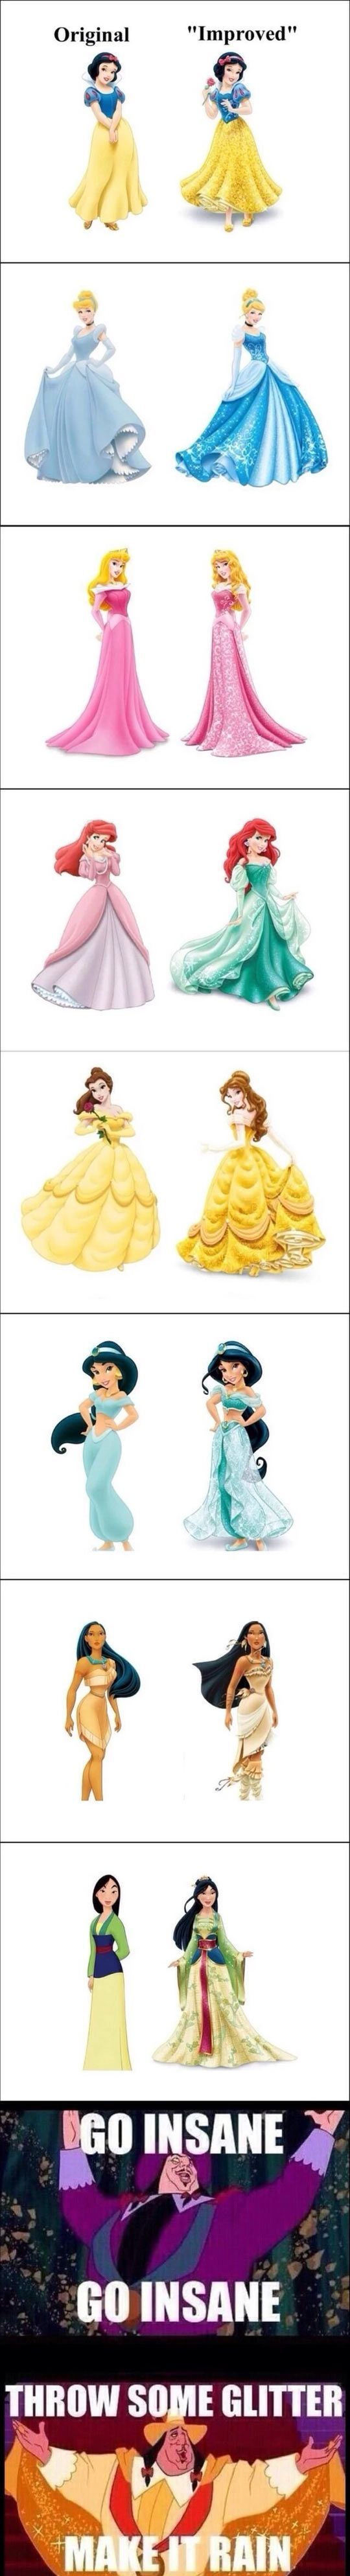 Improved Disney Princesses WHAT HAPPENED TO Ariel and Pocahontas???????????    ???????????????????????????????????????????????????????????????????????????????????????????????????????????????????????????????????????????????????????????????????????????????????